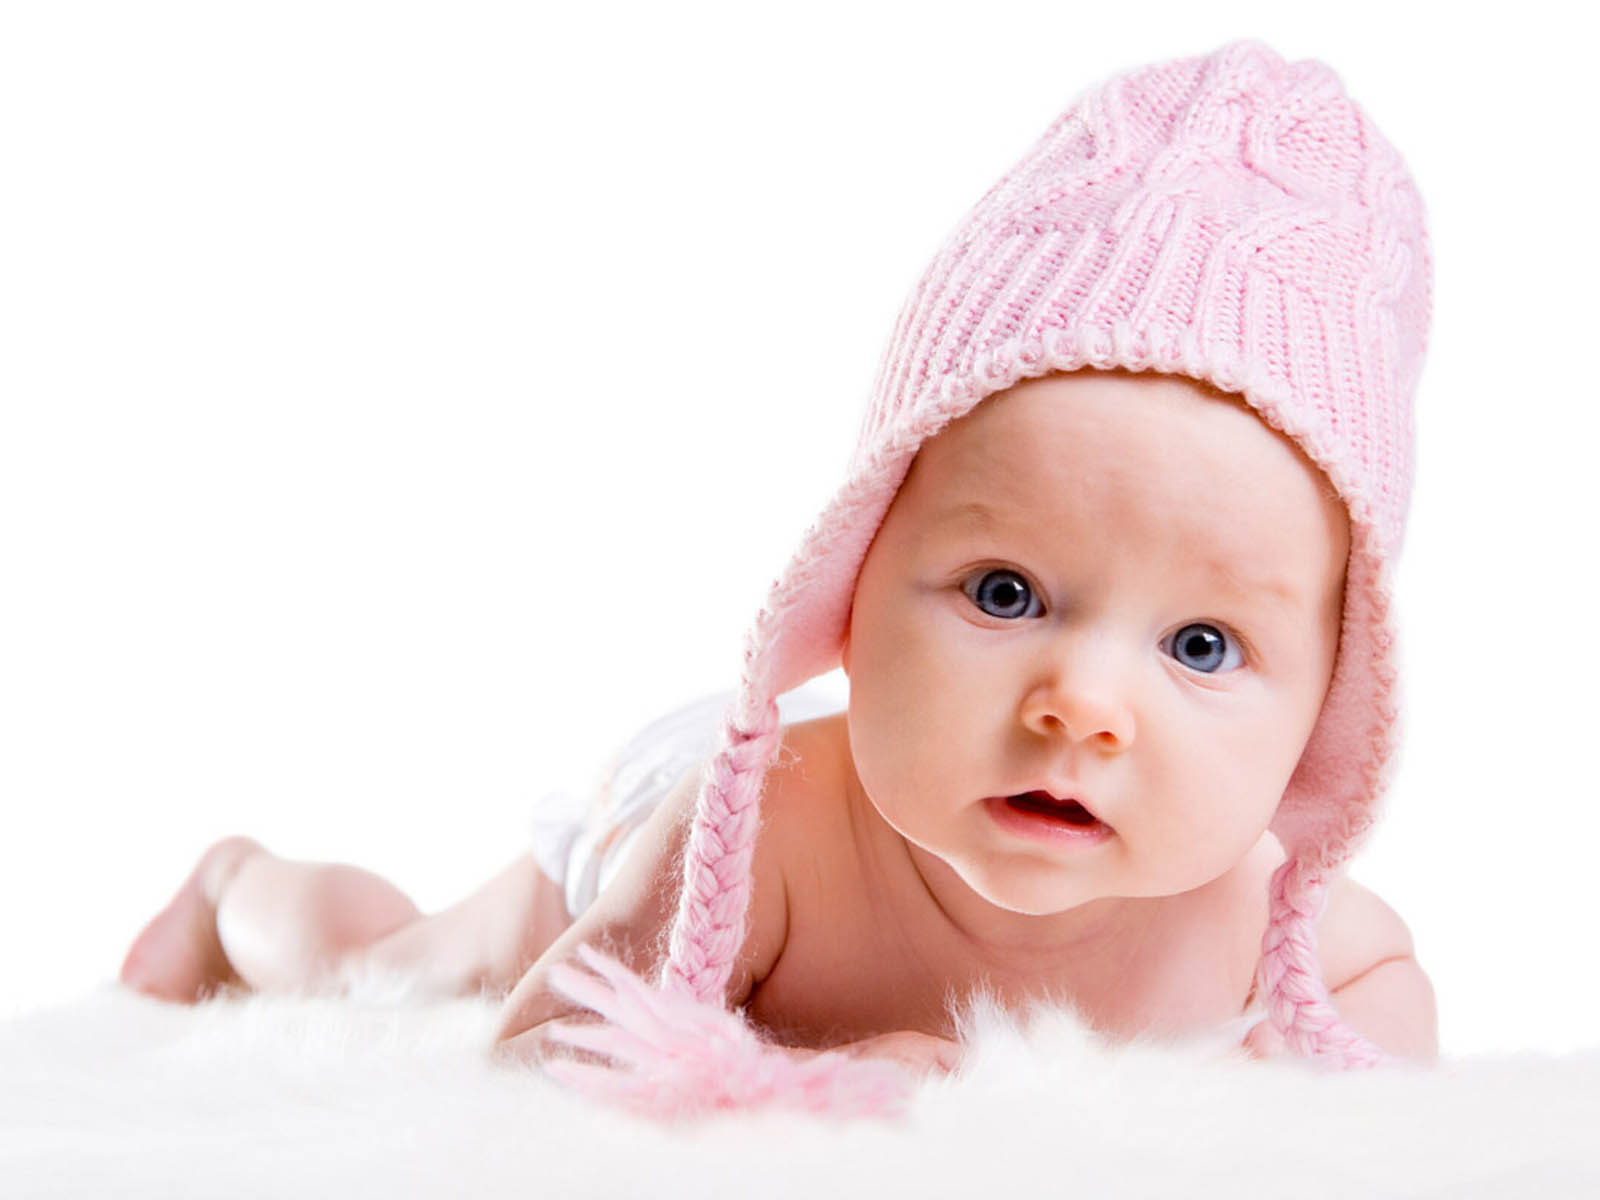 wallpapers: New Born Baby Wallpapers